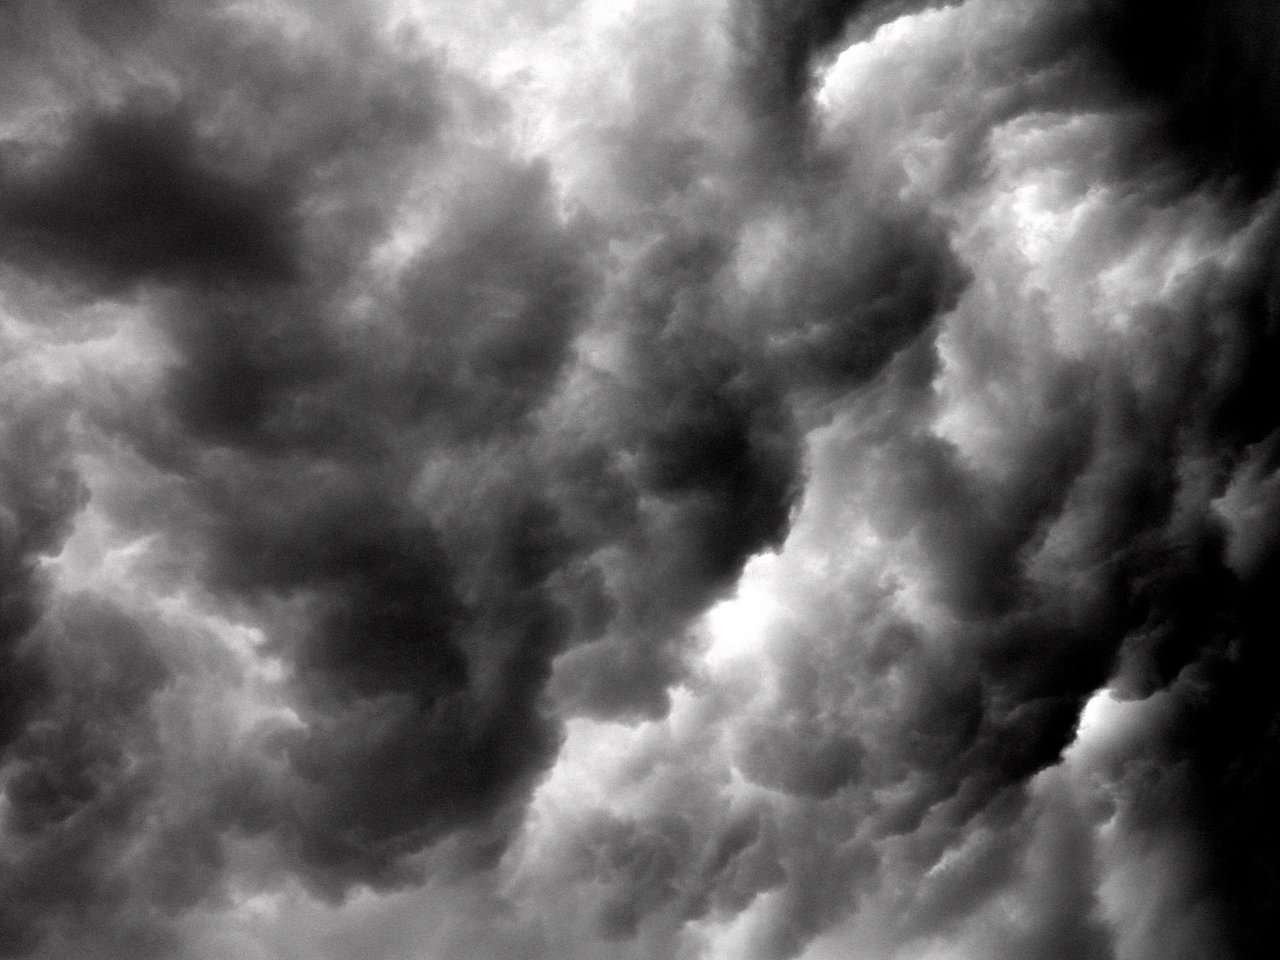 Stock Photo Storm clouds by rich35211 Stock Photo Storm clouds by rich35211